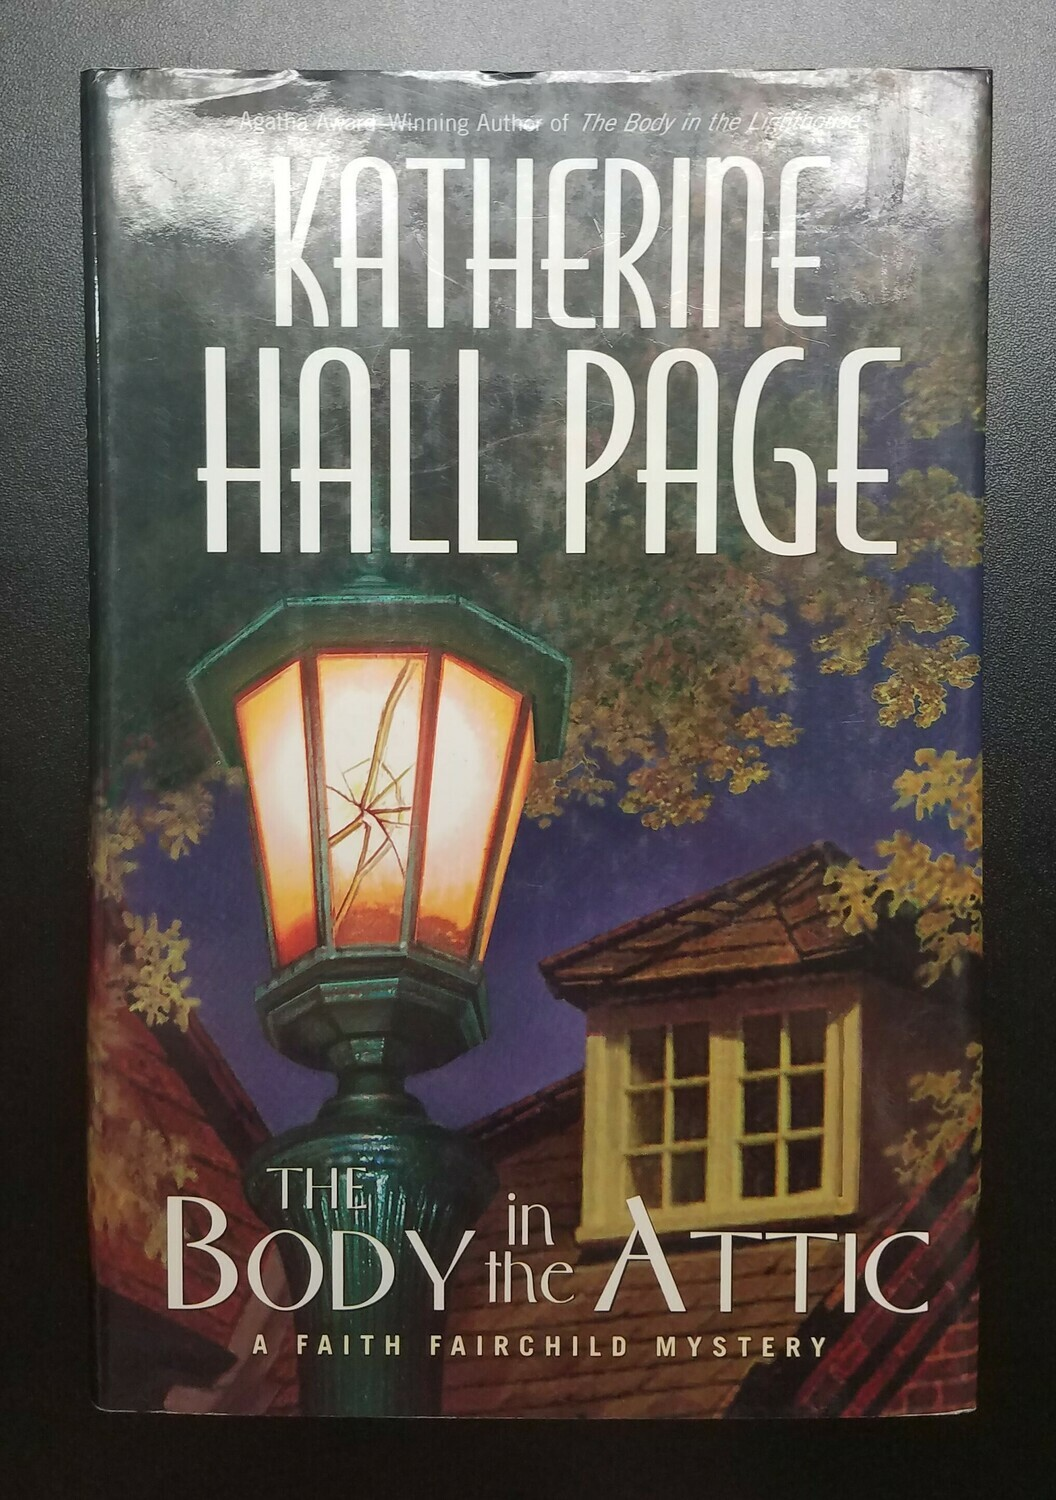 The Body in the Attic by Katherine Hall Page